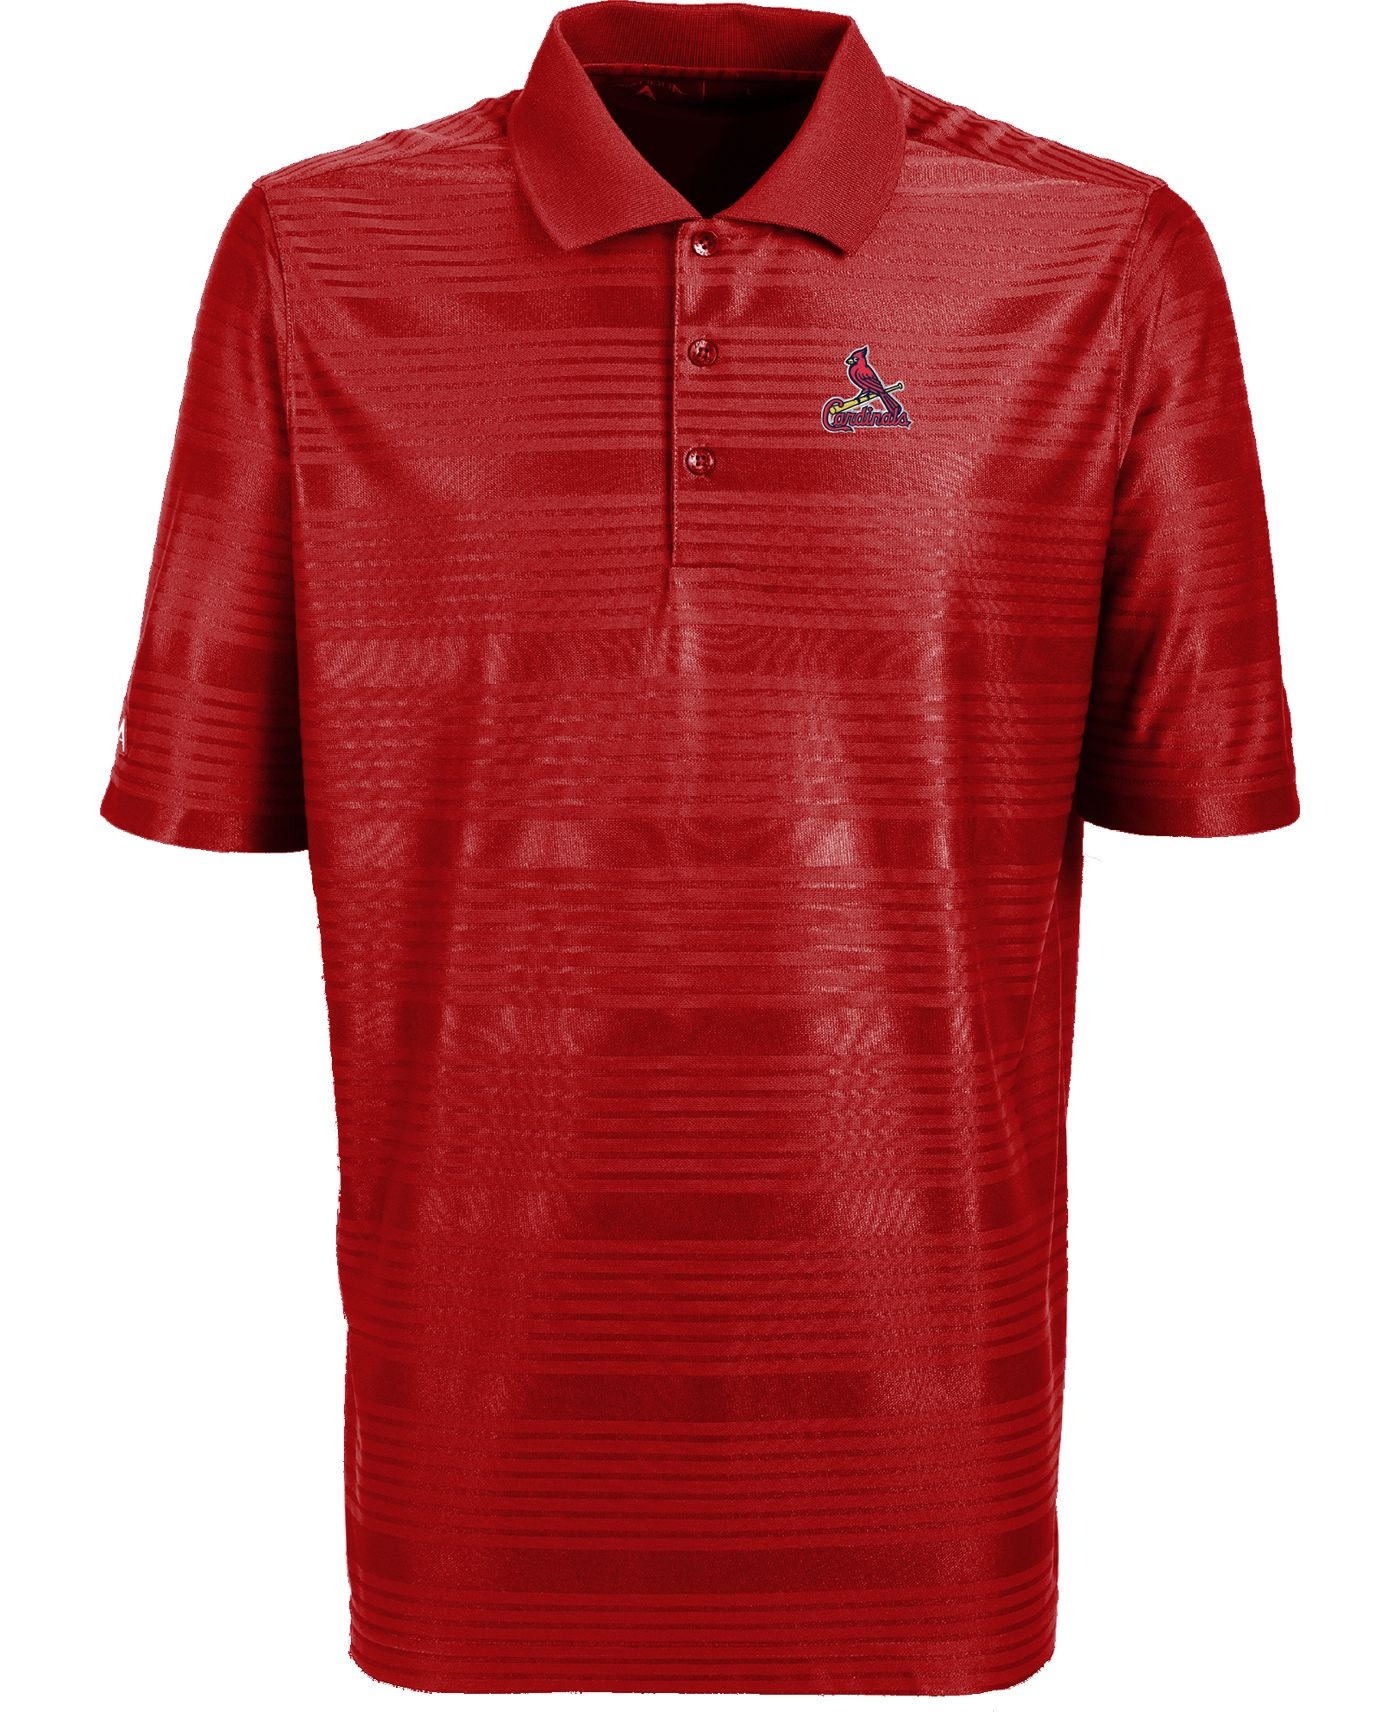 Antigua Men's St. Louis Cardinals Illusion Red Striped Performance Polo